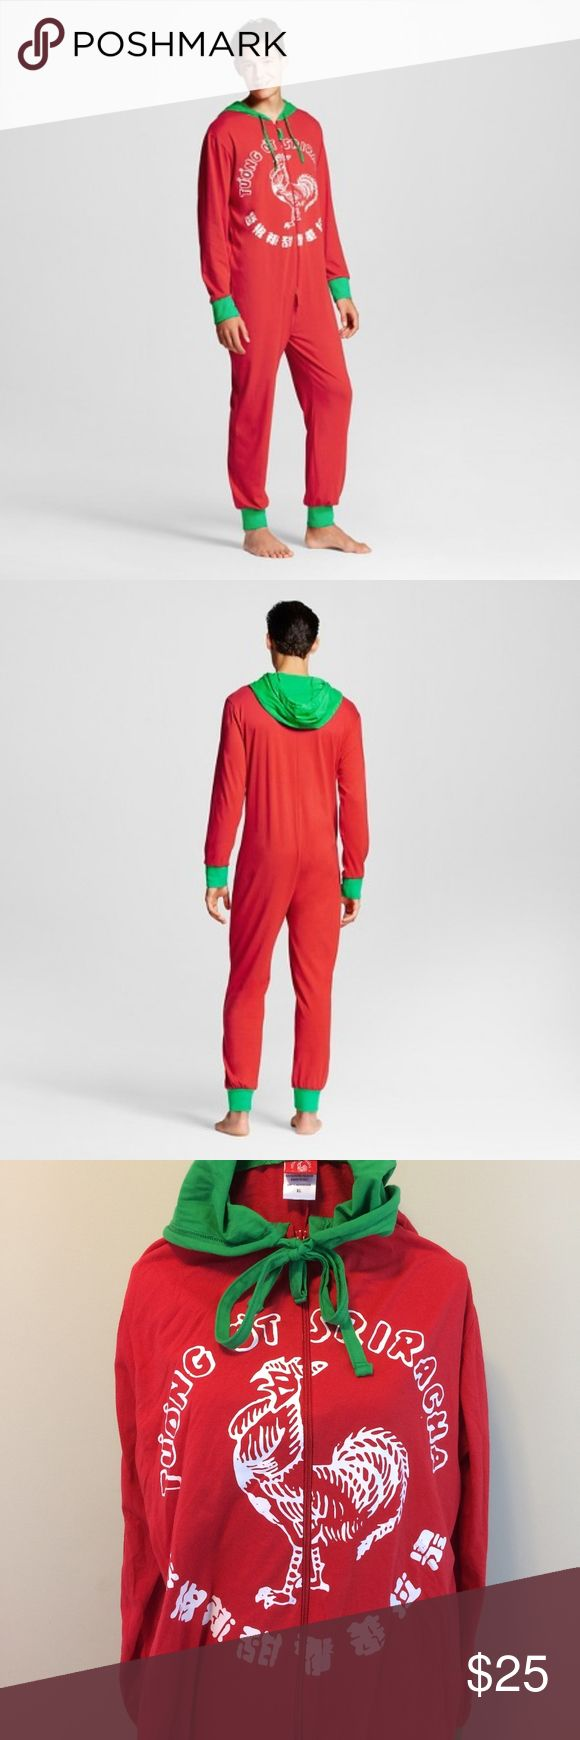 """SRIRACHA men's one-piece pajamas / costume — XL Color & pattern: red and green hot sauce bottle Style: one-piece union suit / costume with long-sleeves, hood with ties, long double-ended zipper in front Material & care: 60% cotton, 40% polyester; machine-wash, tumble-dry  Approximate measurements (laid flat) Length (shoulder to ankle): 64"""" Chest (underarm to underarm): 23"""" Sleeve: 27""""  Condition Gently pre-owned; 3"""" run on left thigh; no other known flaws. Shipped with care from a clean…"""